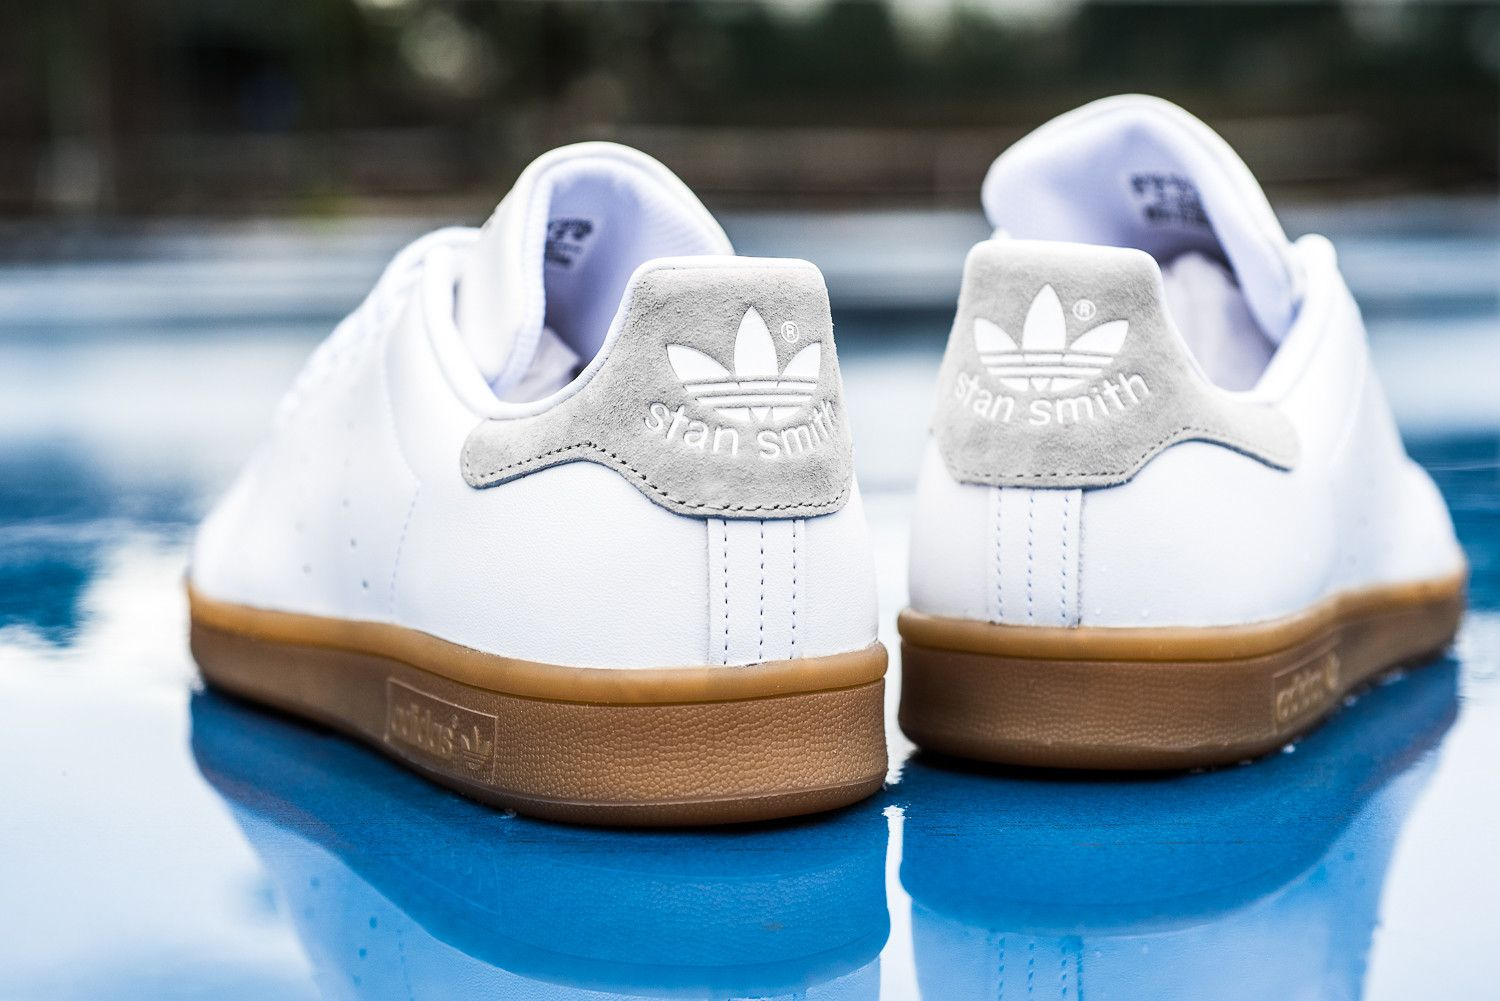 shoes like adidas nmd adidas stan smith gum sole buy